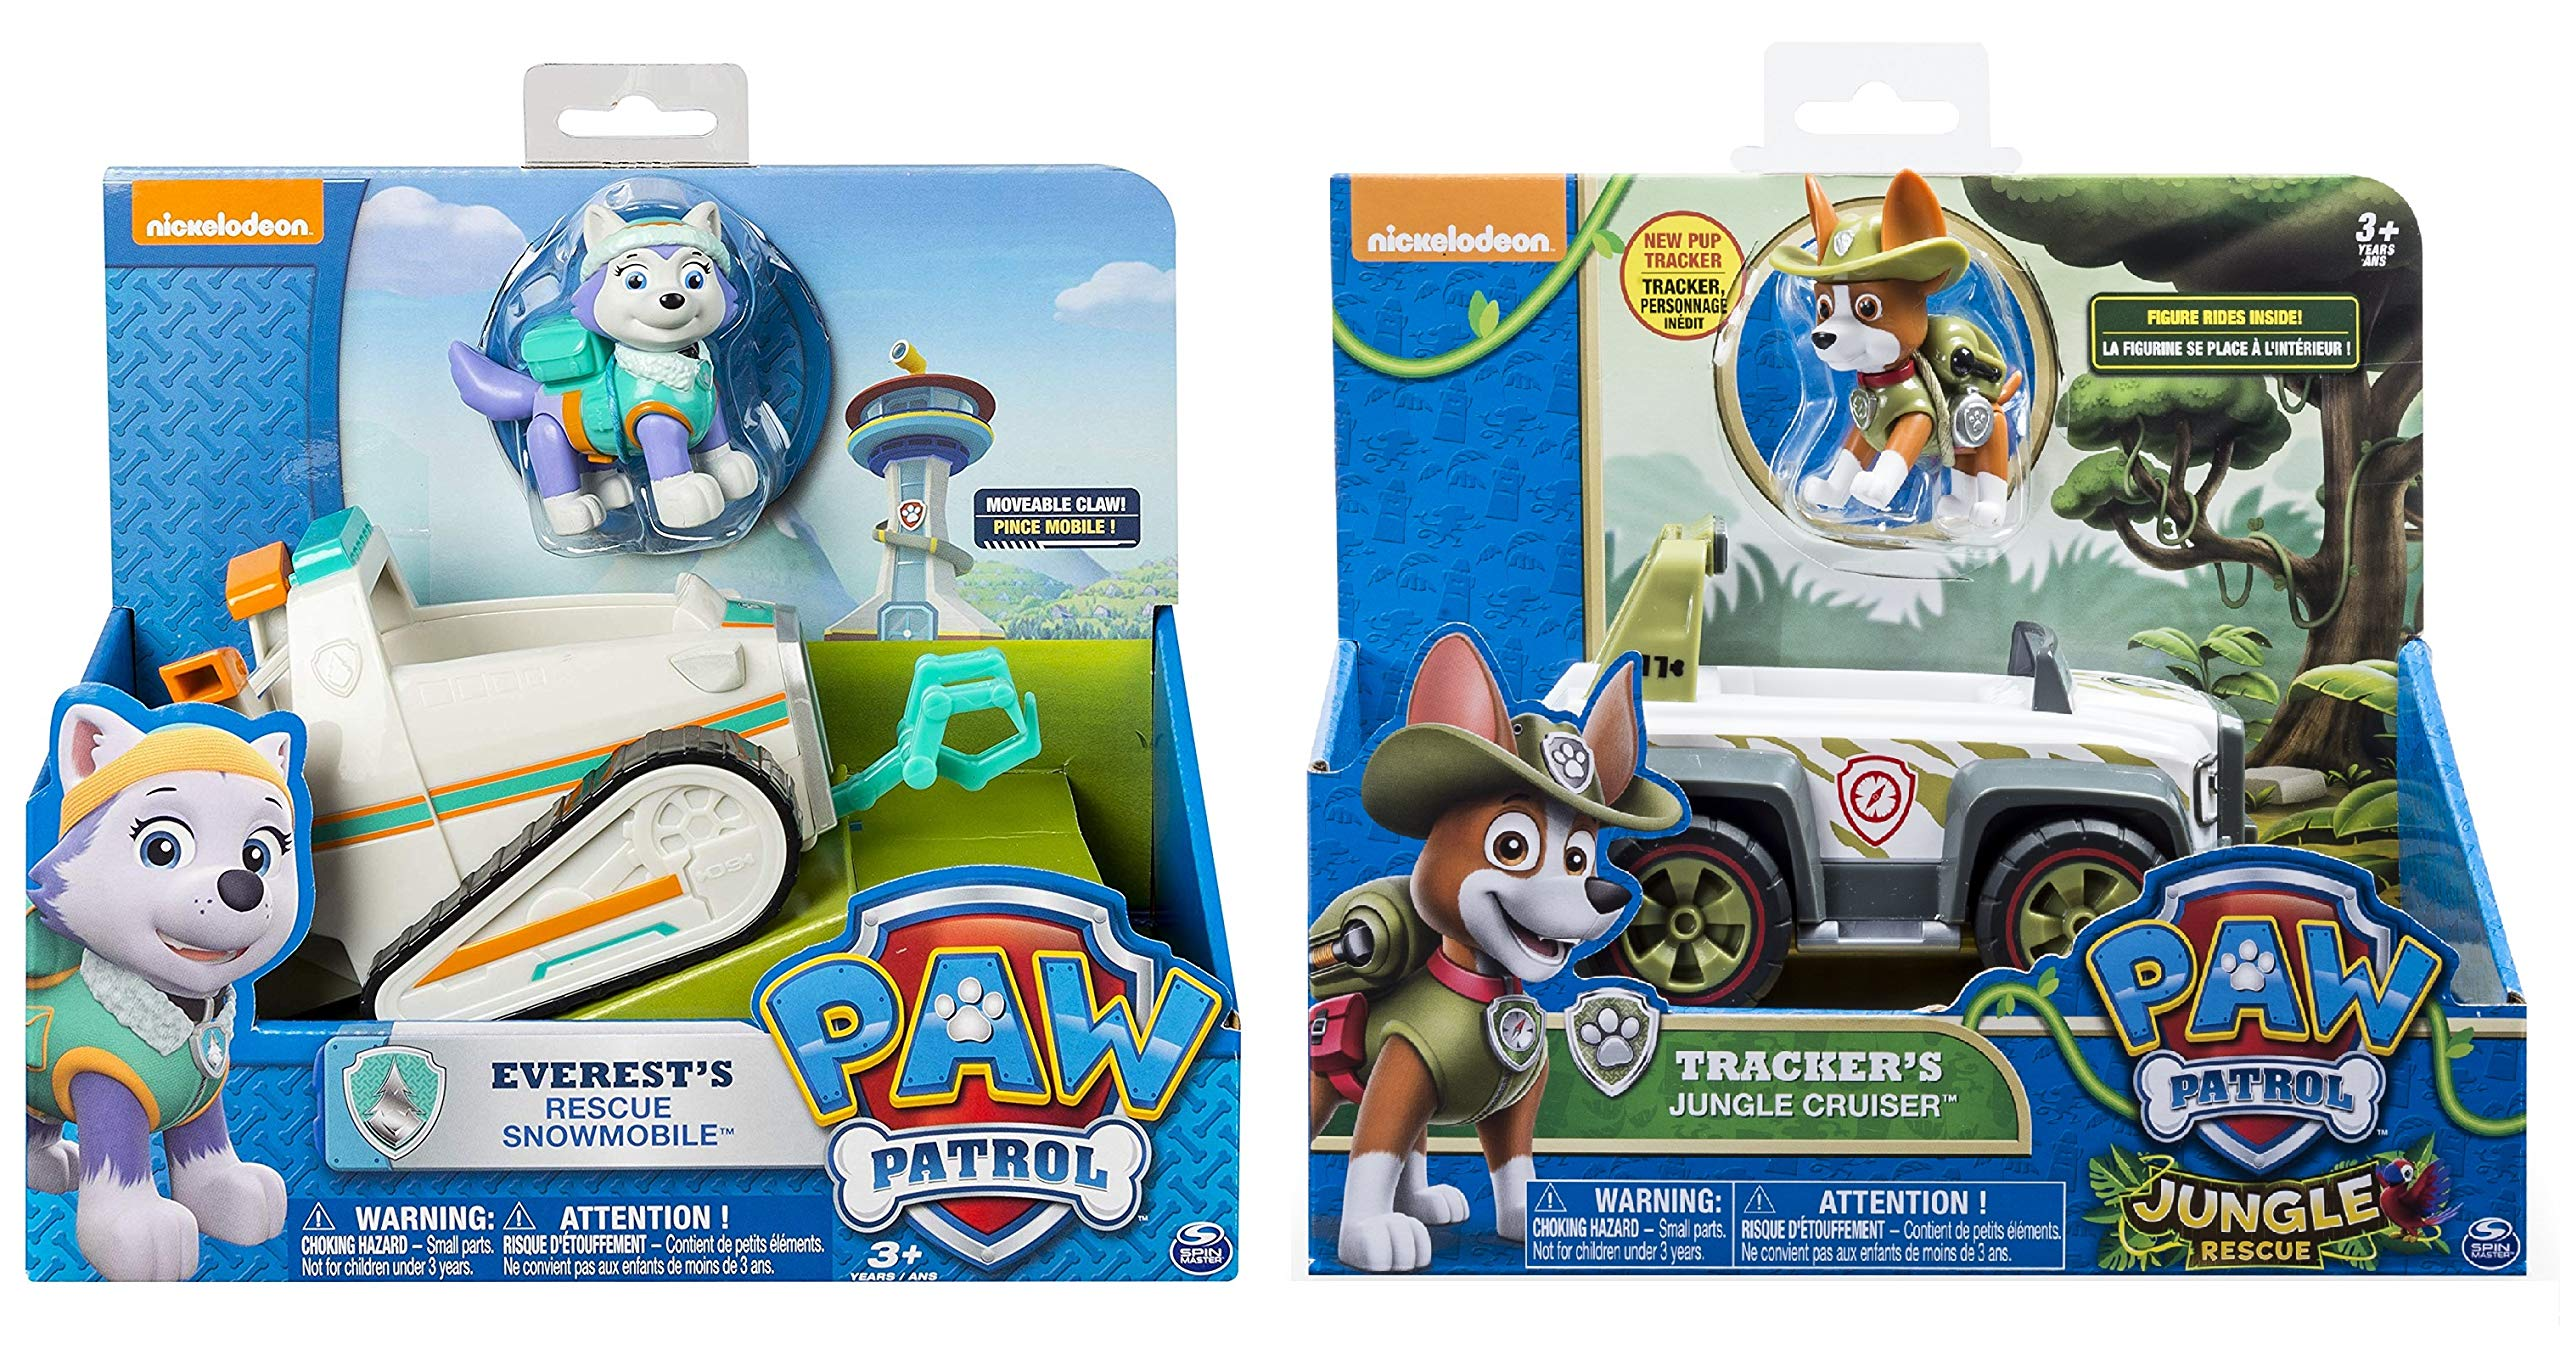 Paw Patrol Everest's Rescue Snowmobile & Paw Patrol, Jungle Rescue, Tracker's Jungle Cruiser, Vehicle & Figure Includes Blizy Pen by Paw Patrol